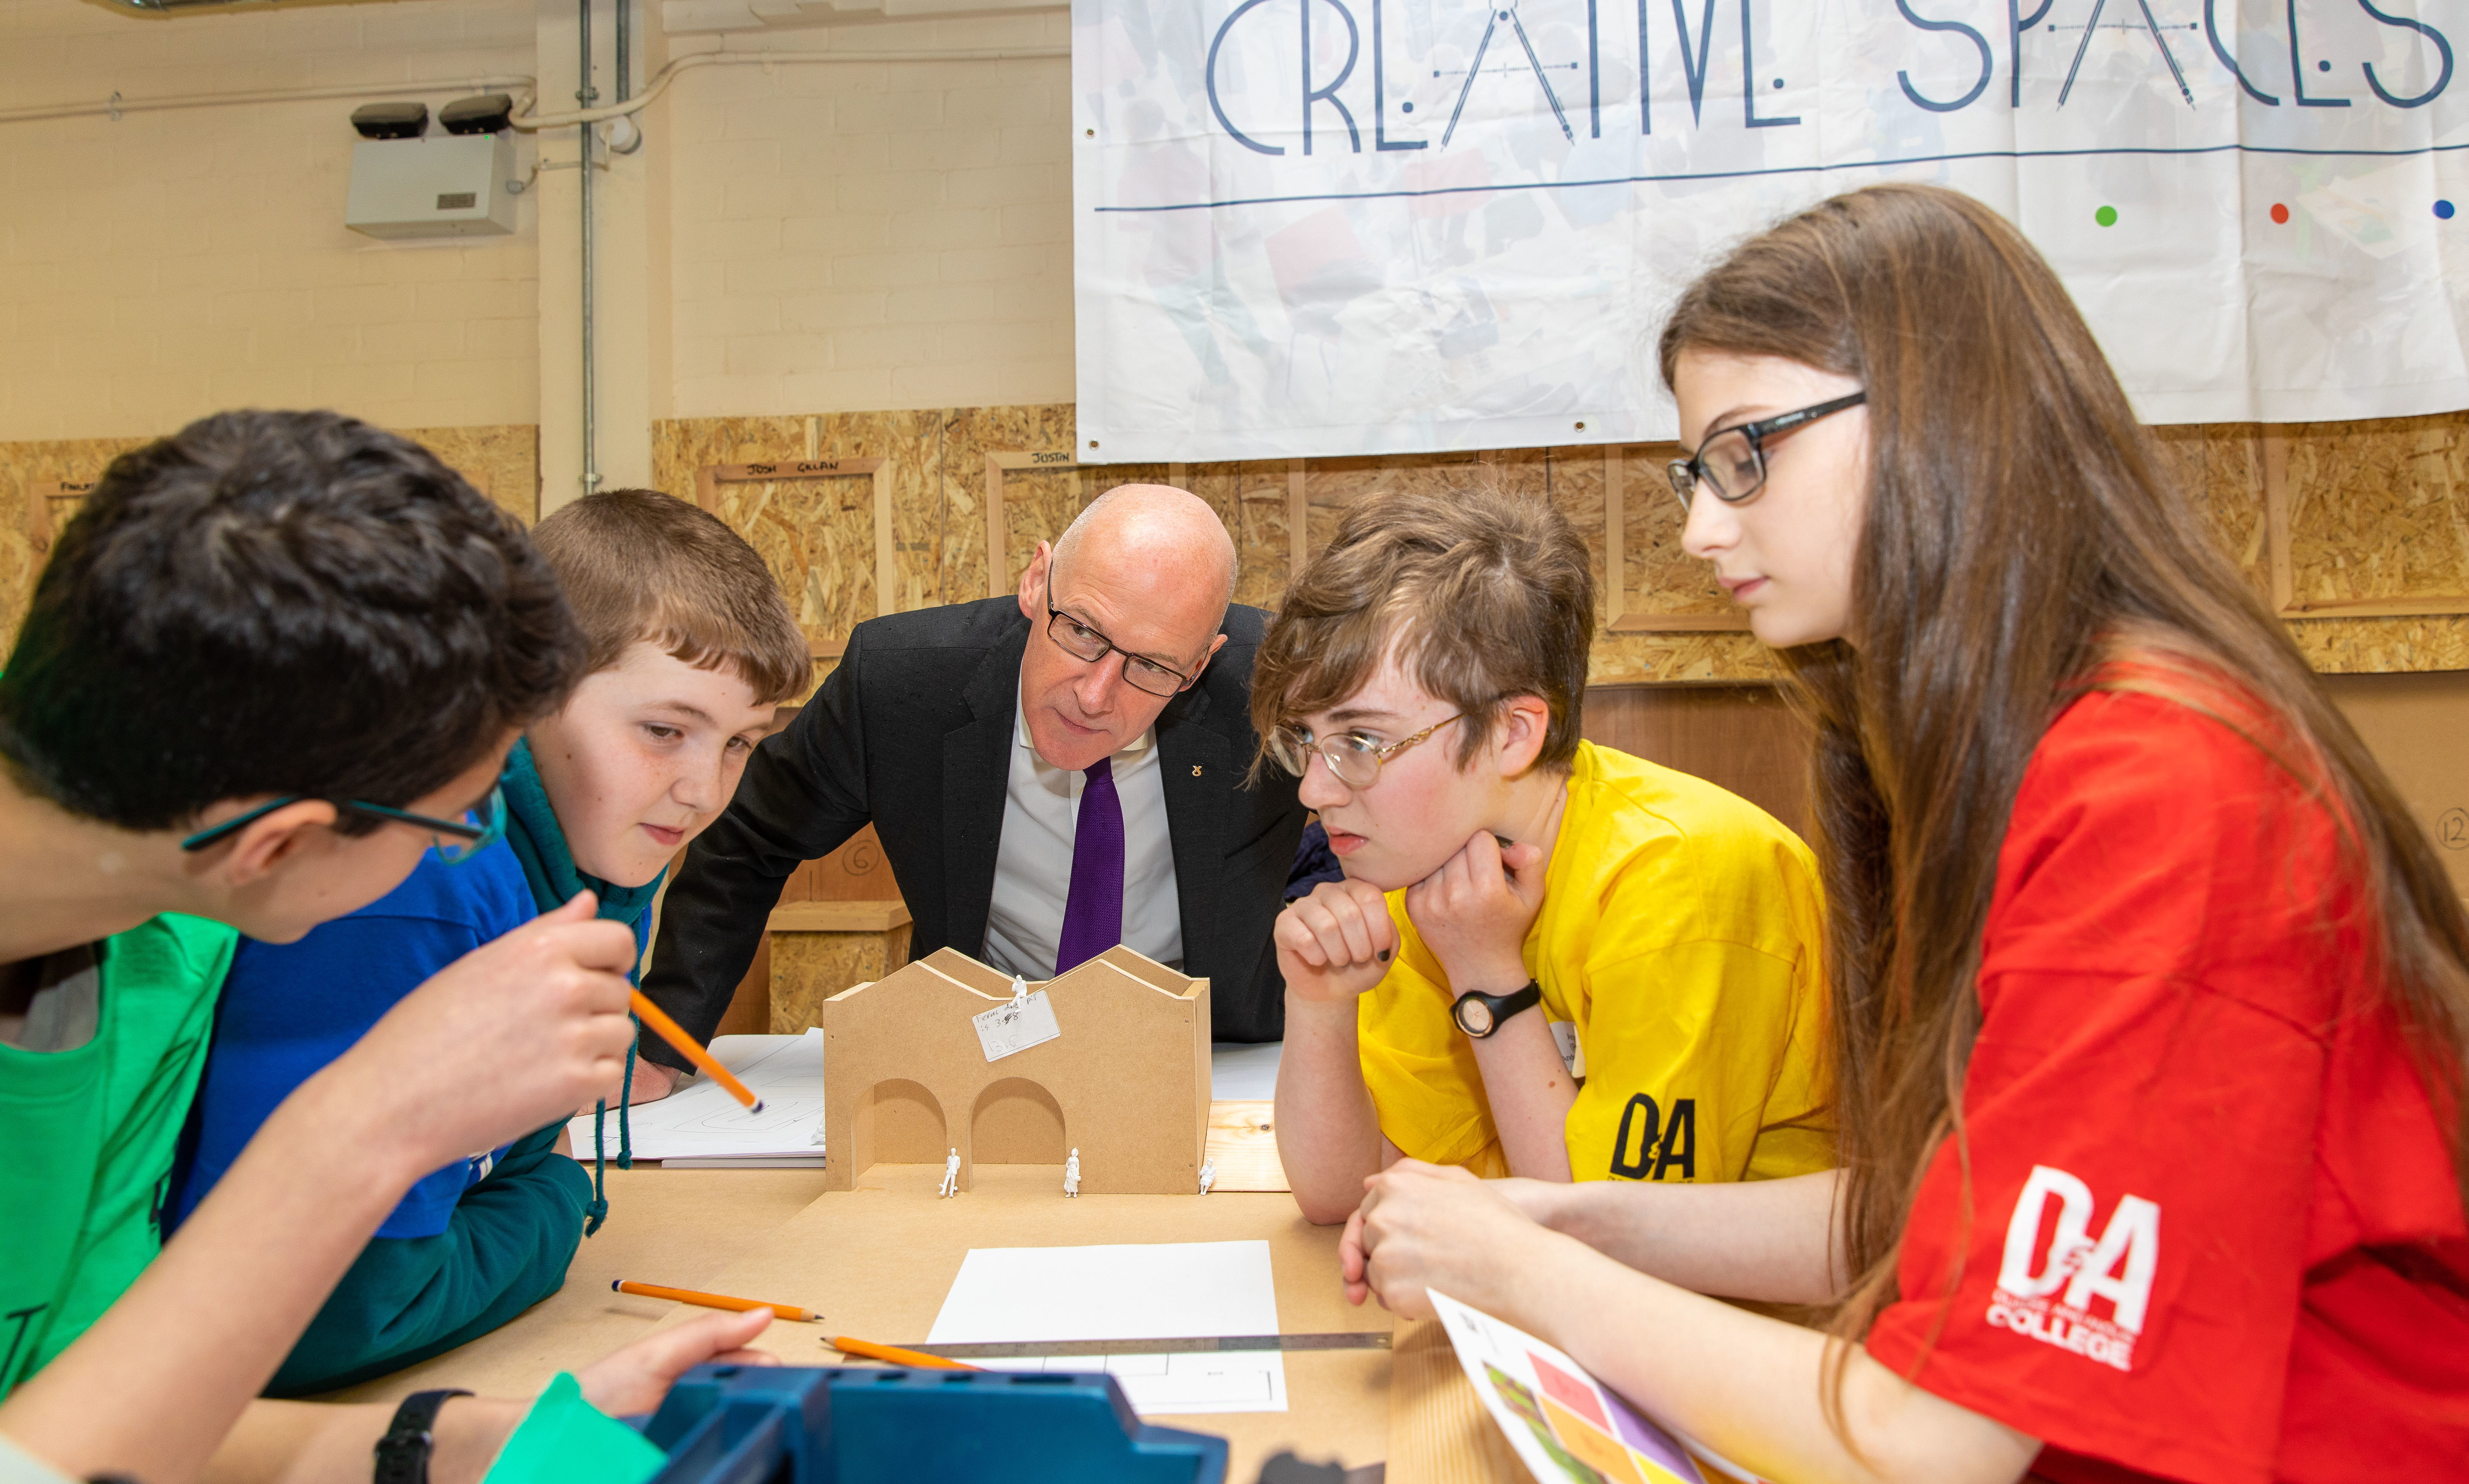 MSP John Swinney speaks to pupils Sven Thomson, Jack Smith, Amy Kelly and Fern Semple from Anderson High School.